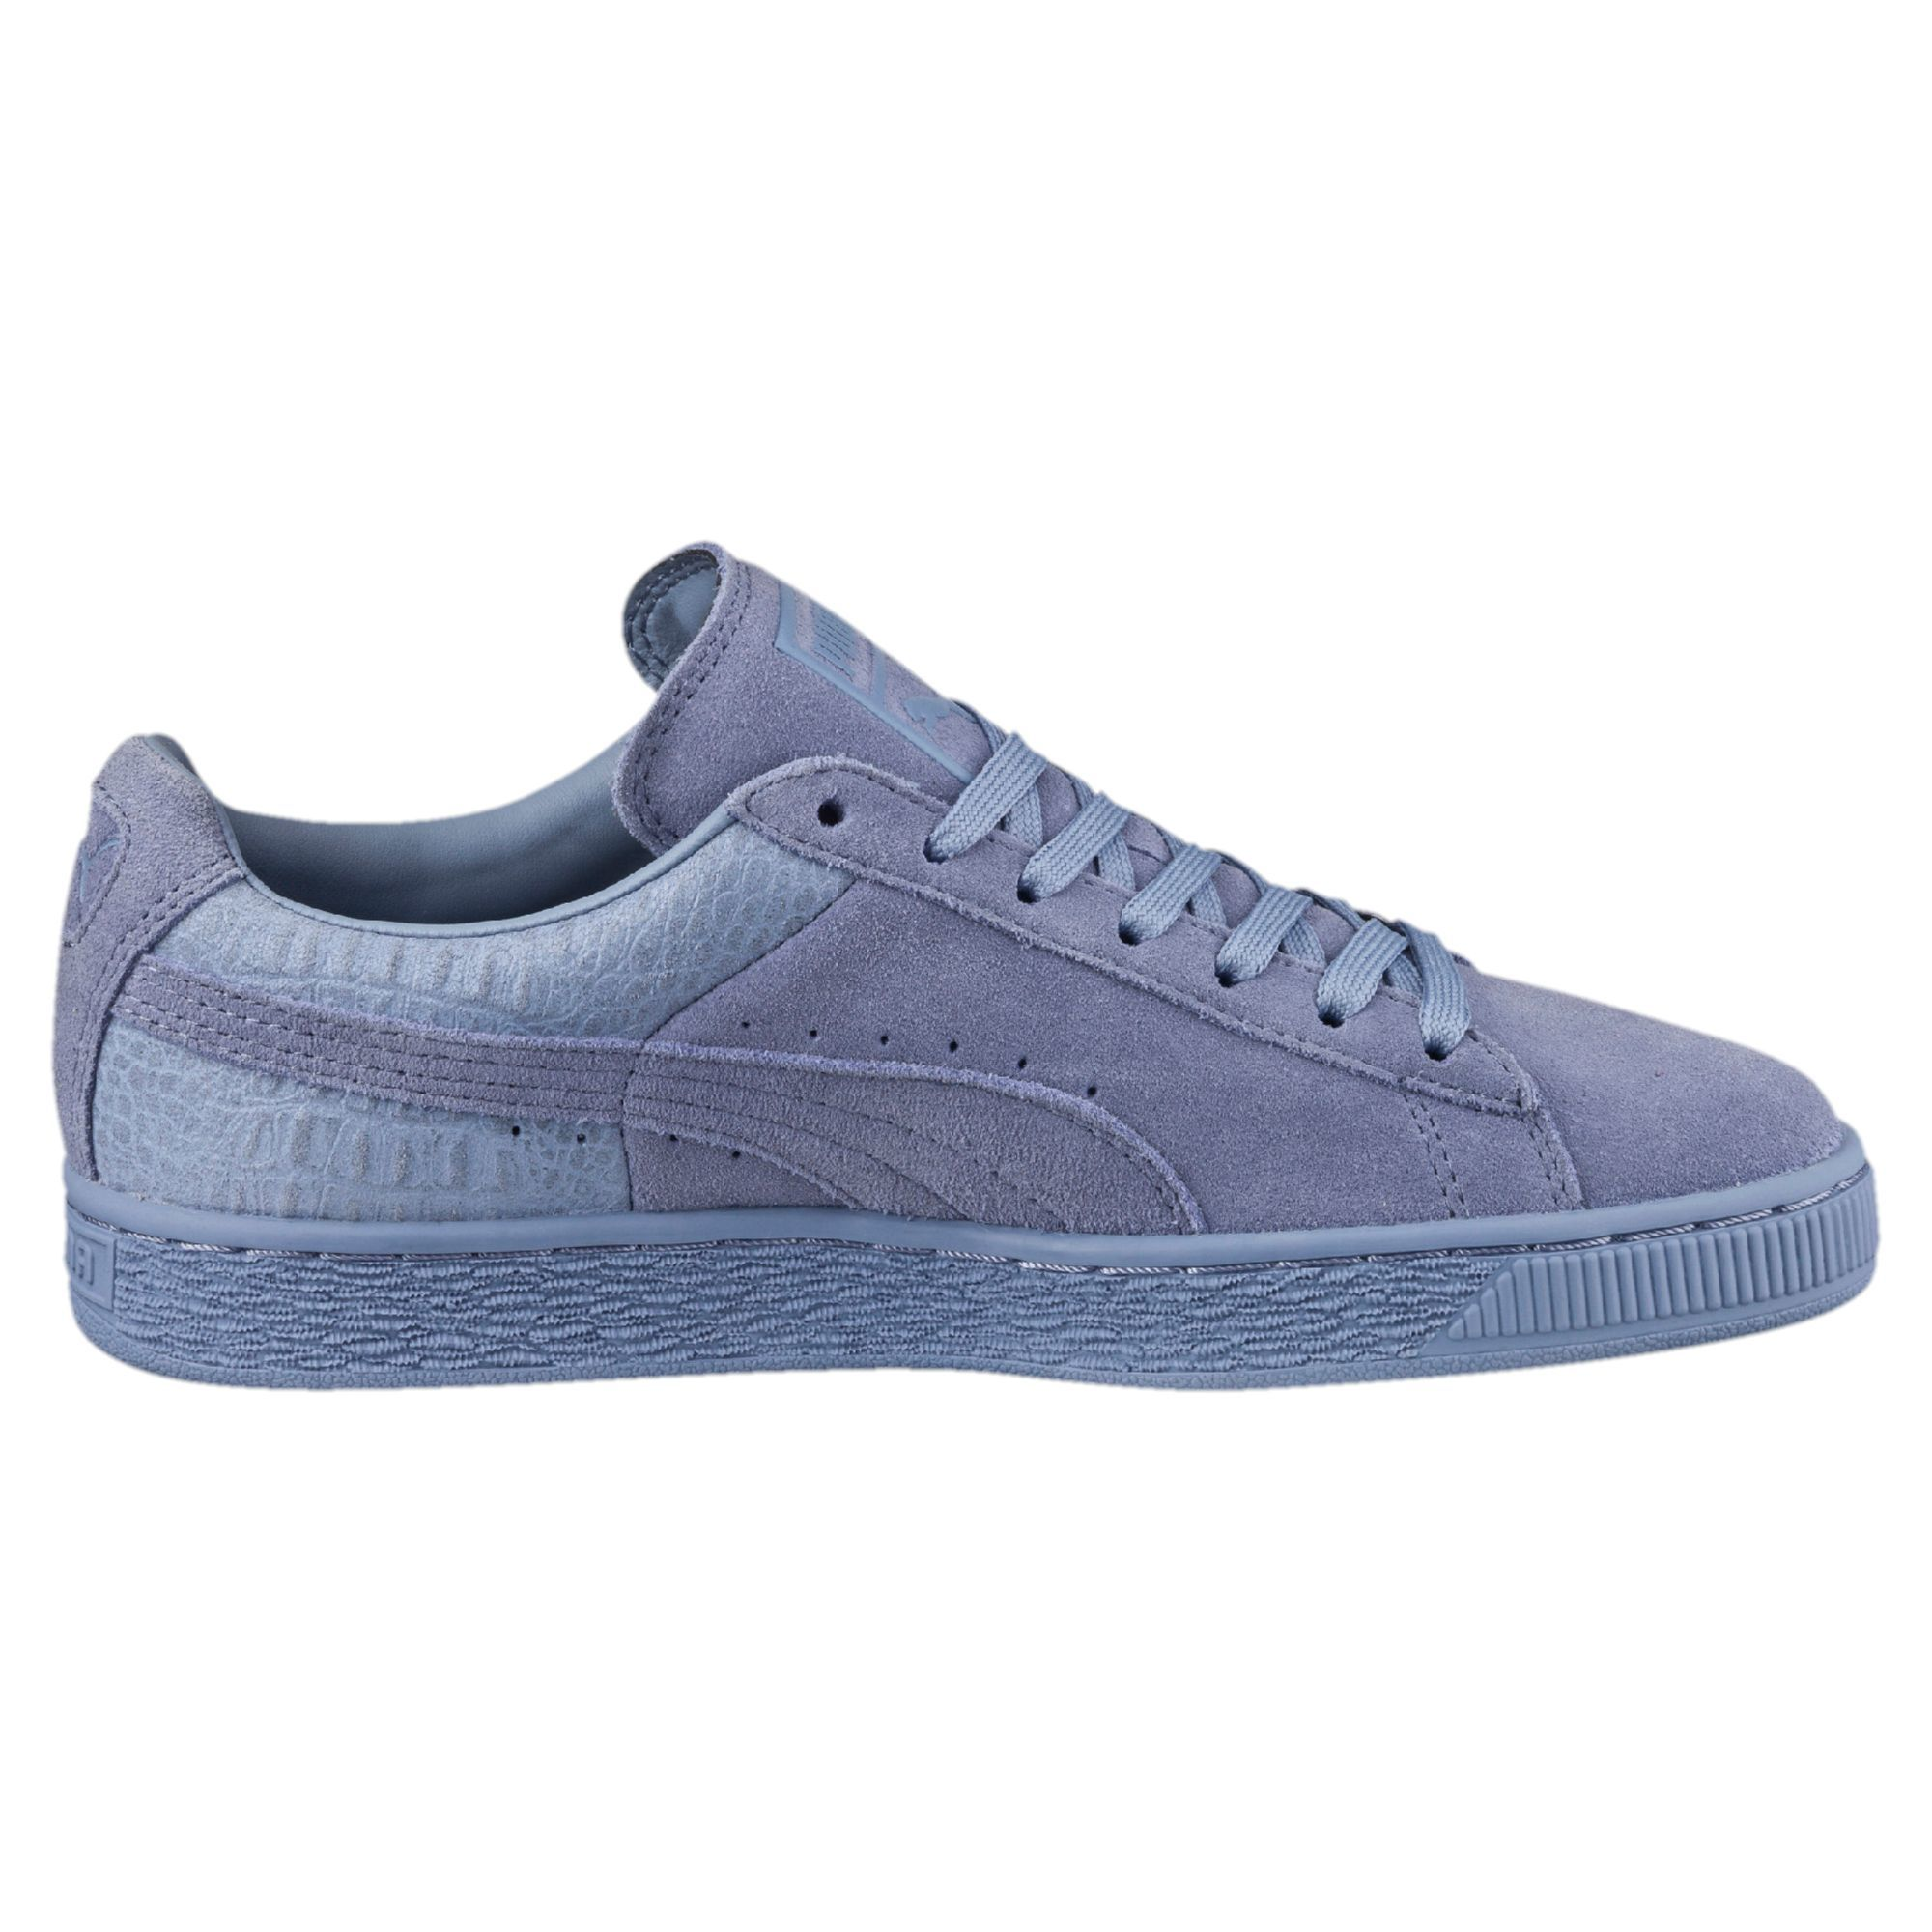 bb3f805f5d1b Puma Suede Classic Emboss Women s Sneakers in Multicolor (Tempest)